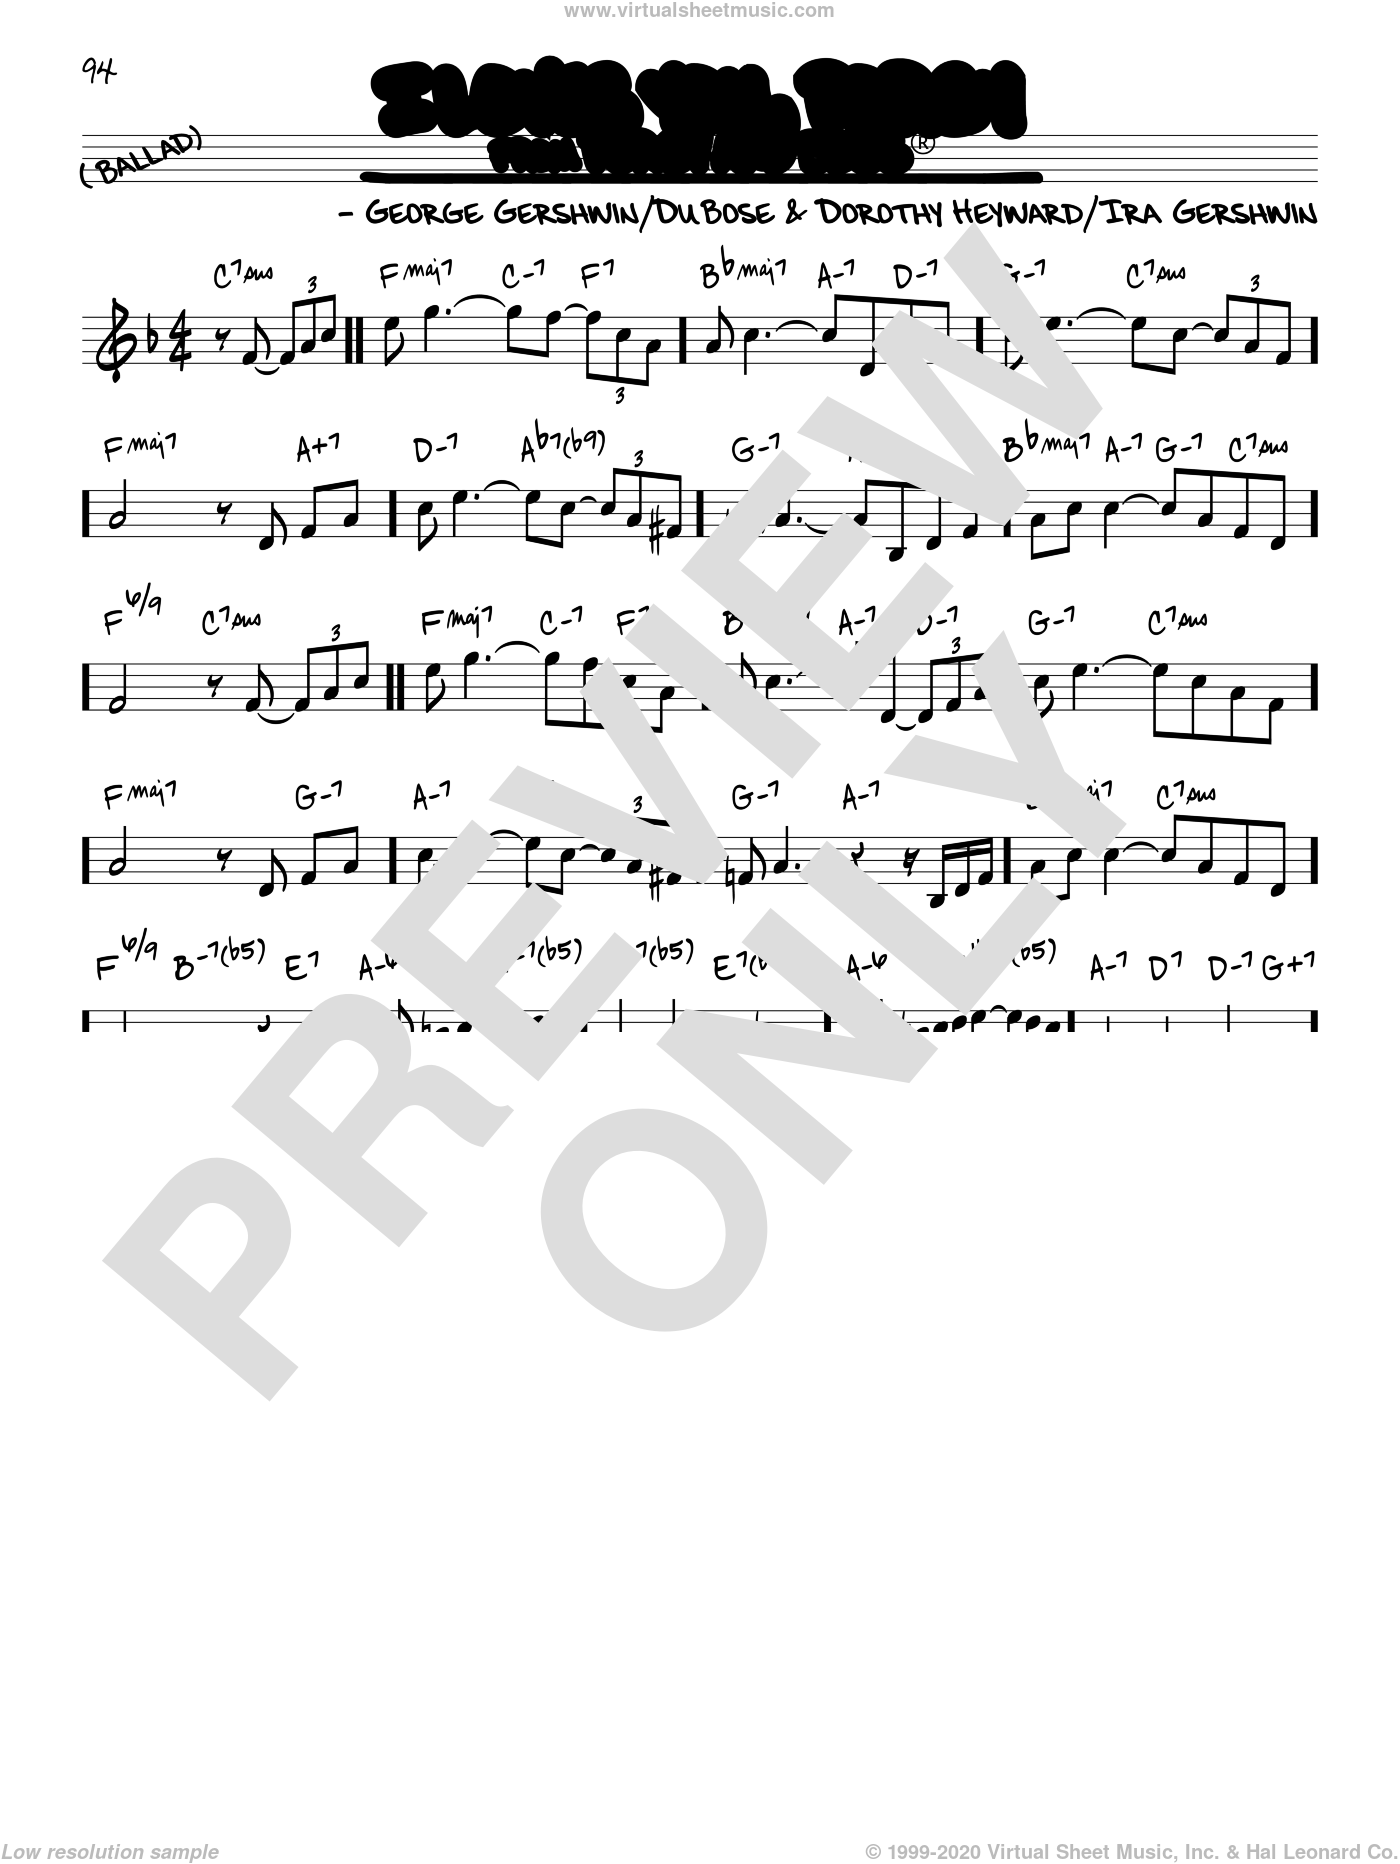 I Loves You, Porgy sheet music for voice and other instruments (real book) by George Gershwin, Dorothy Heyward, DuBose Heyward and Ira Gershwin, intermediate skill level